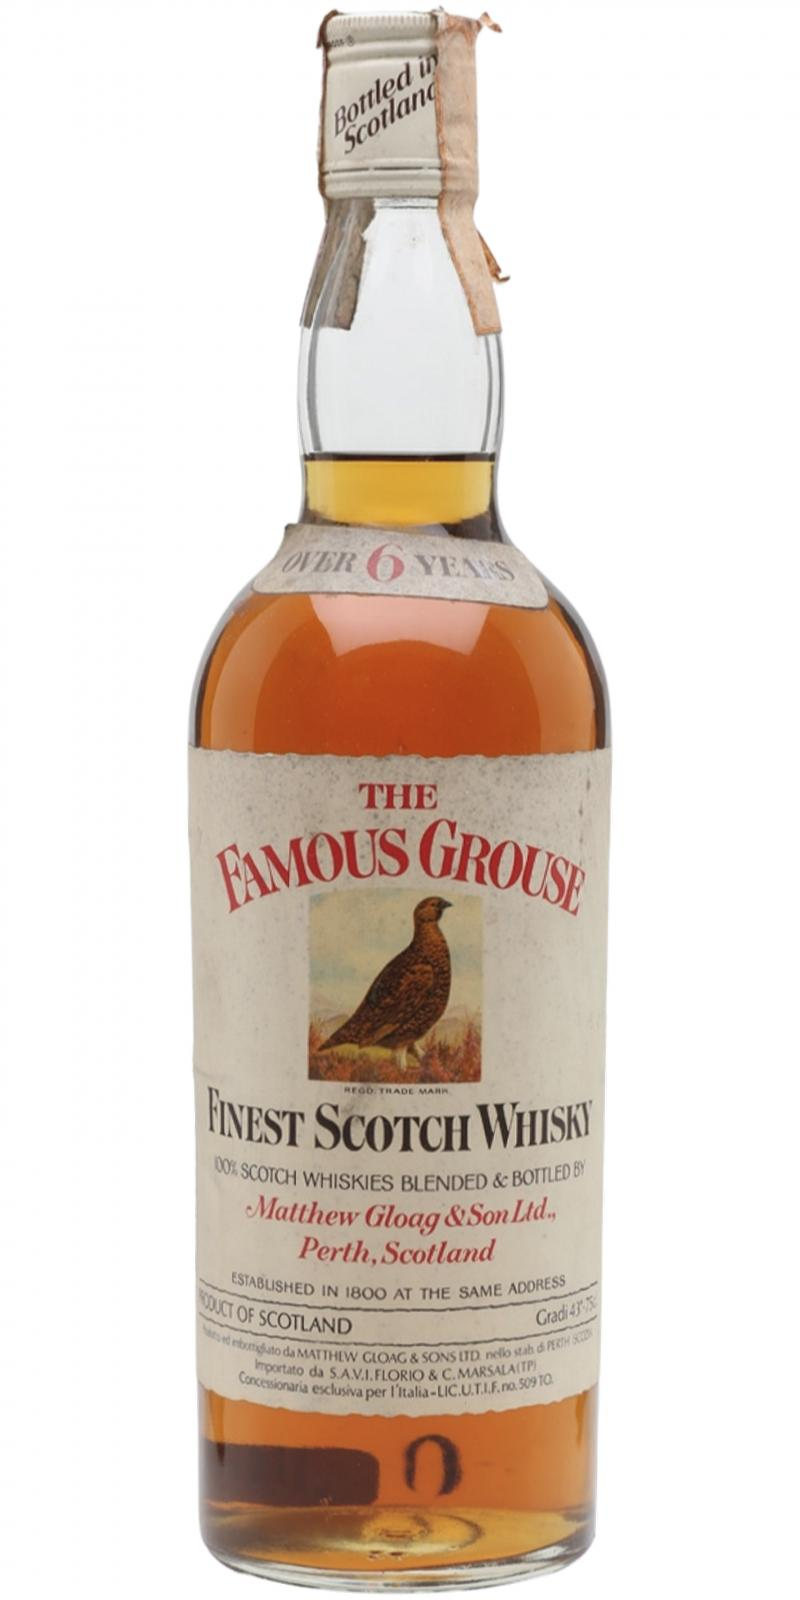 The Famous Grouse 06-year-old